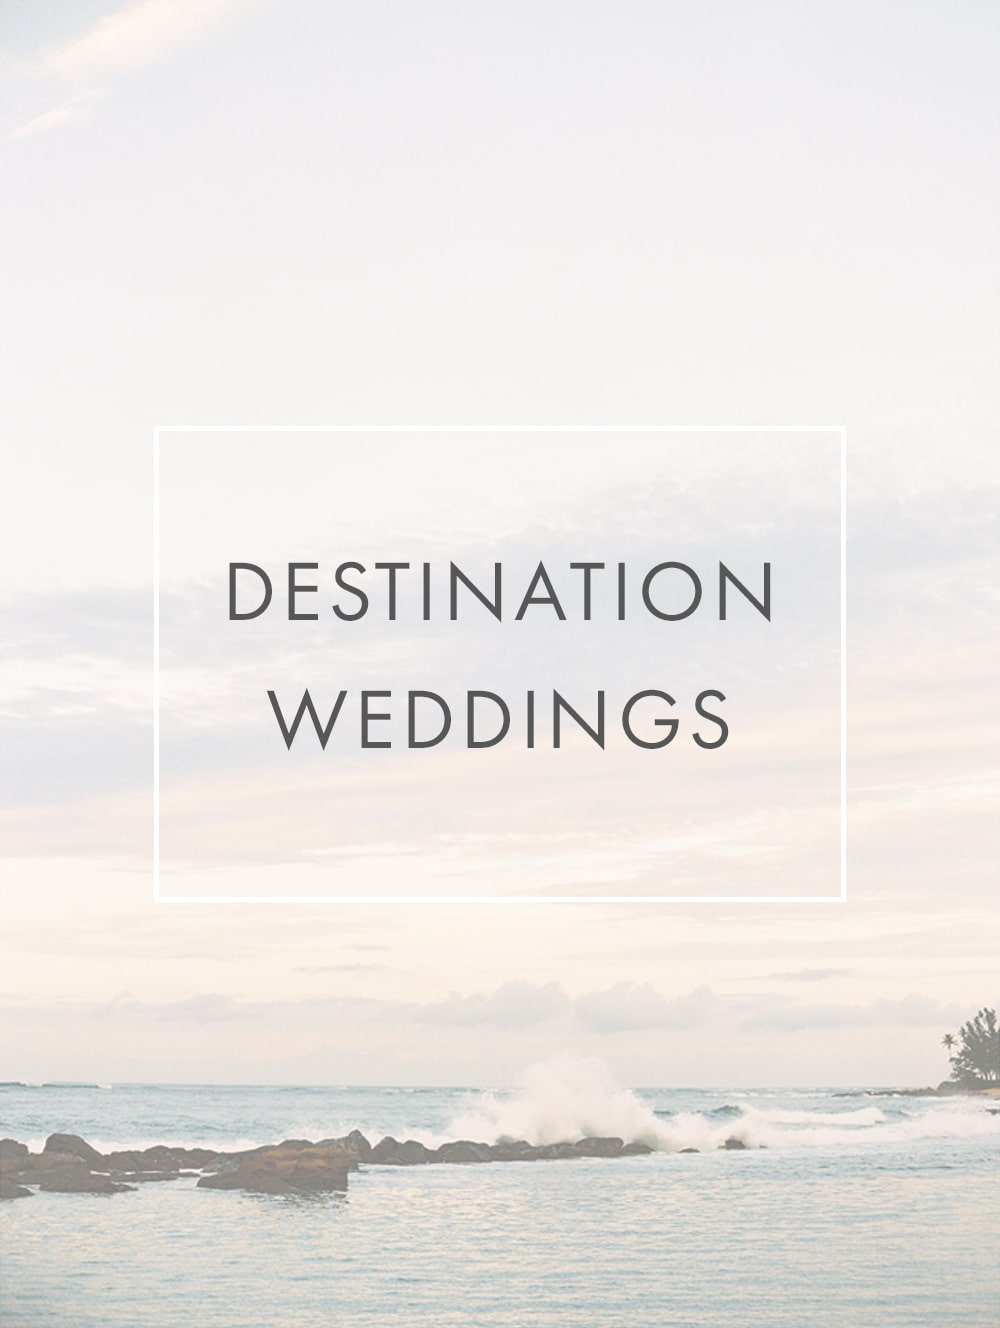 Destination_Weddings-mobile-min.jpg